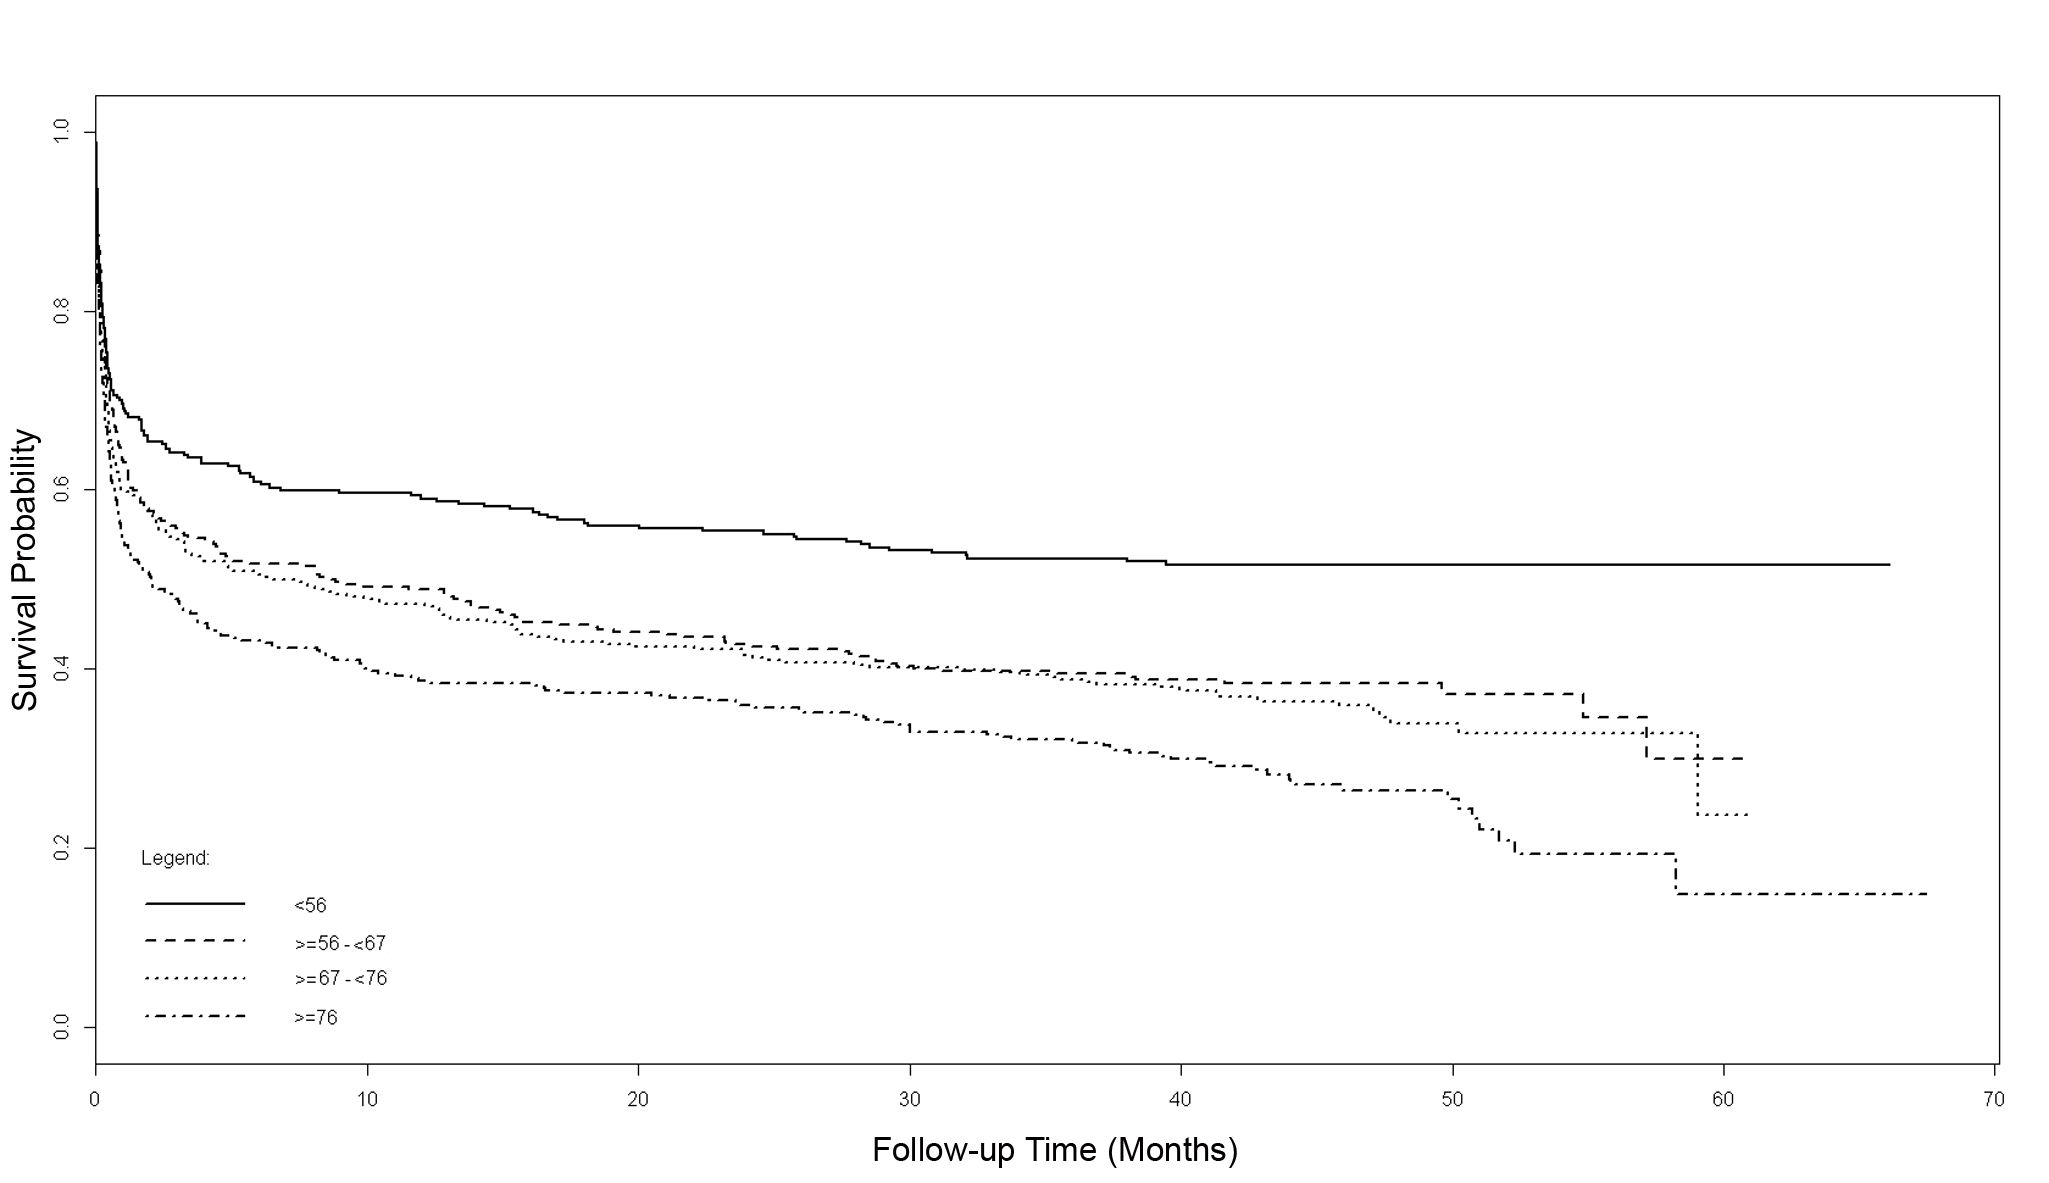 Adjusted Cox model survival curves from randomization, stratified by quartiles of age.